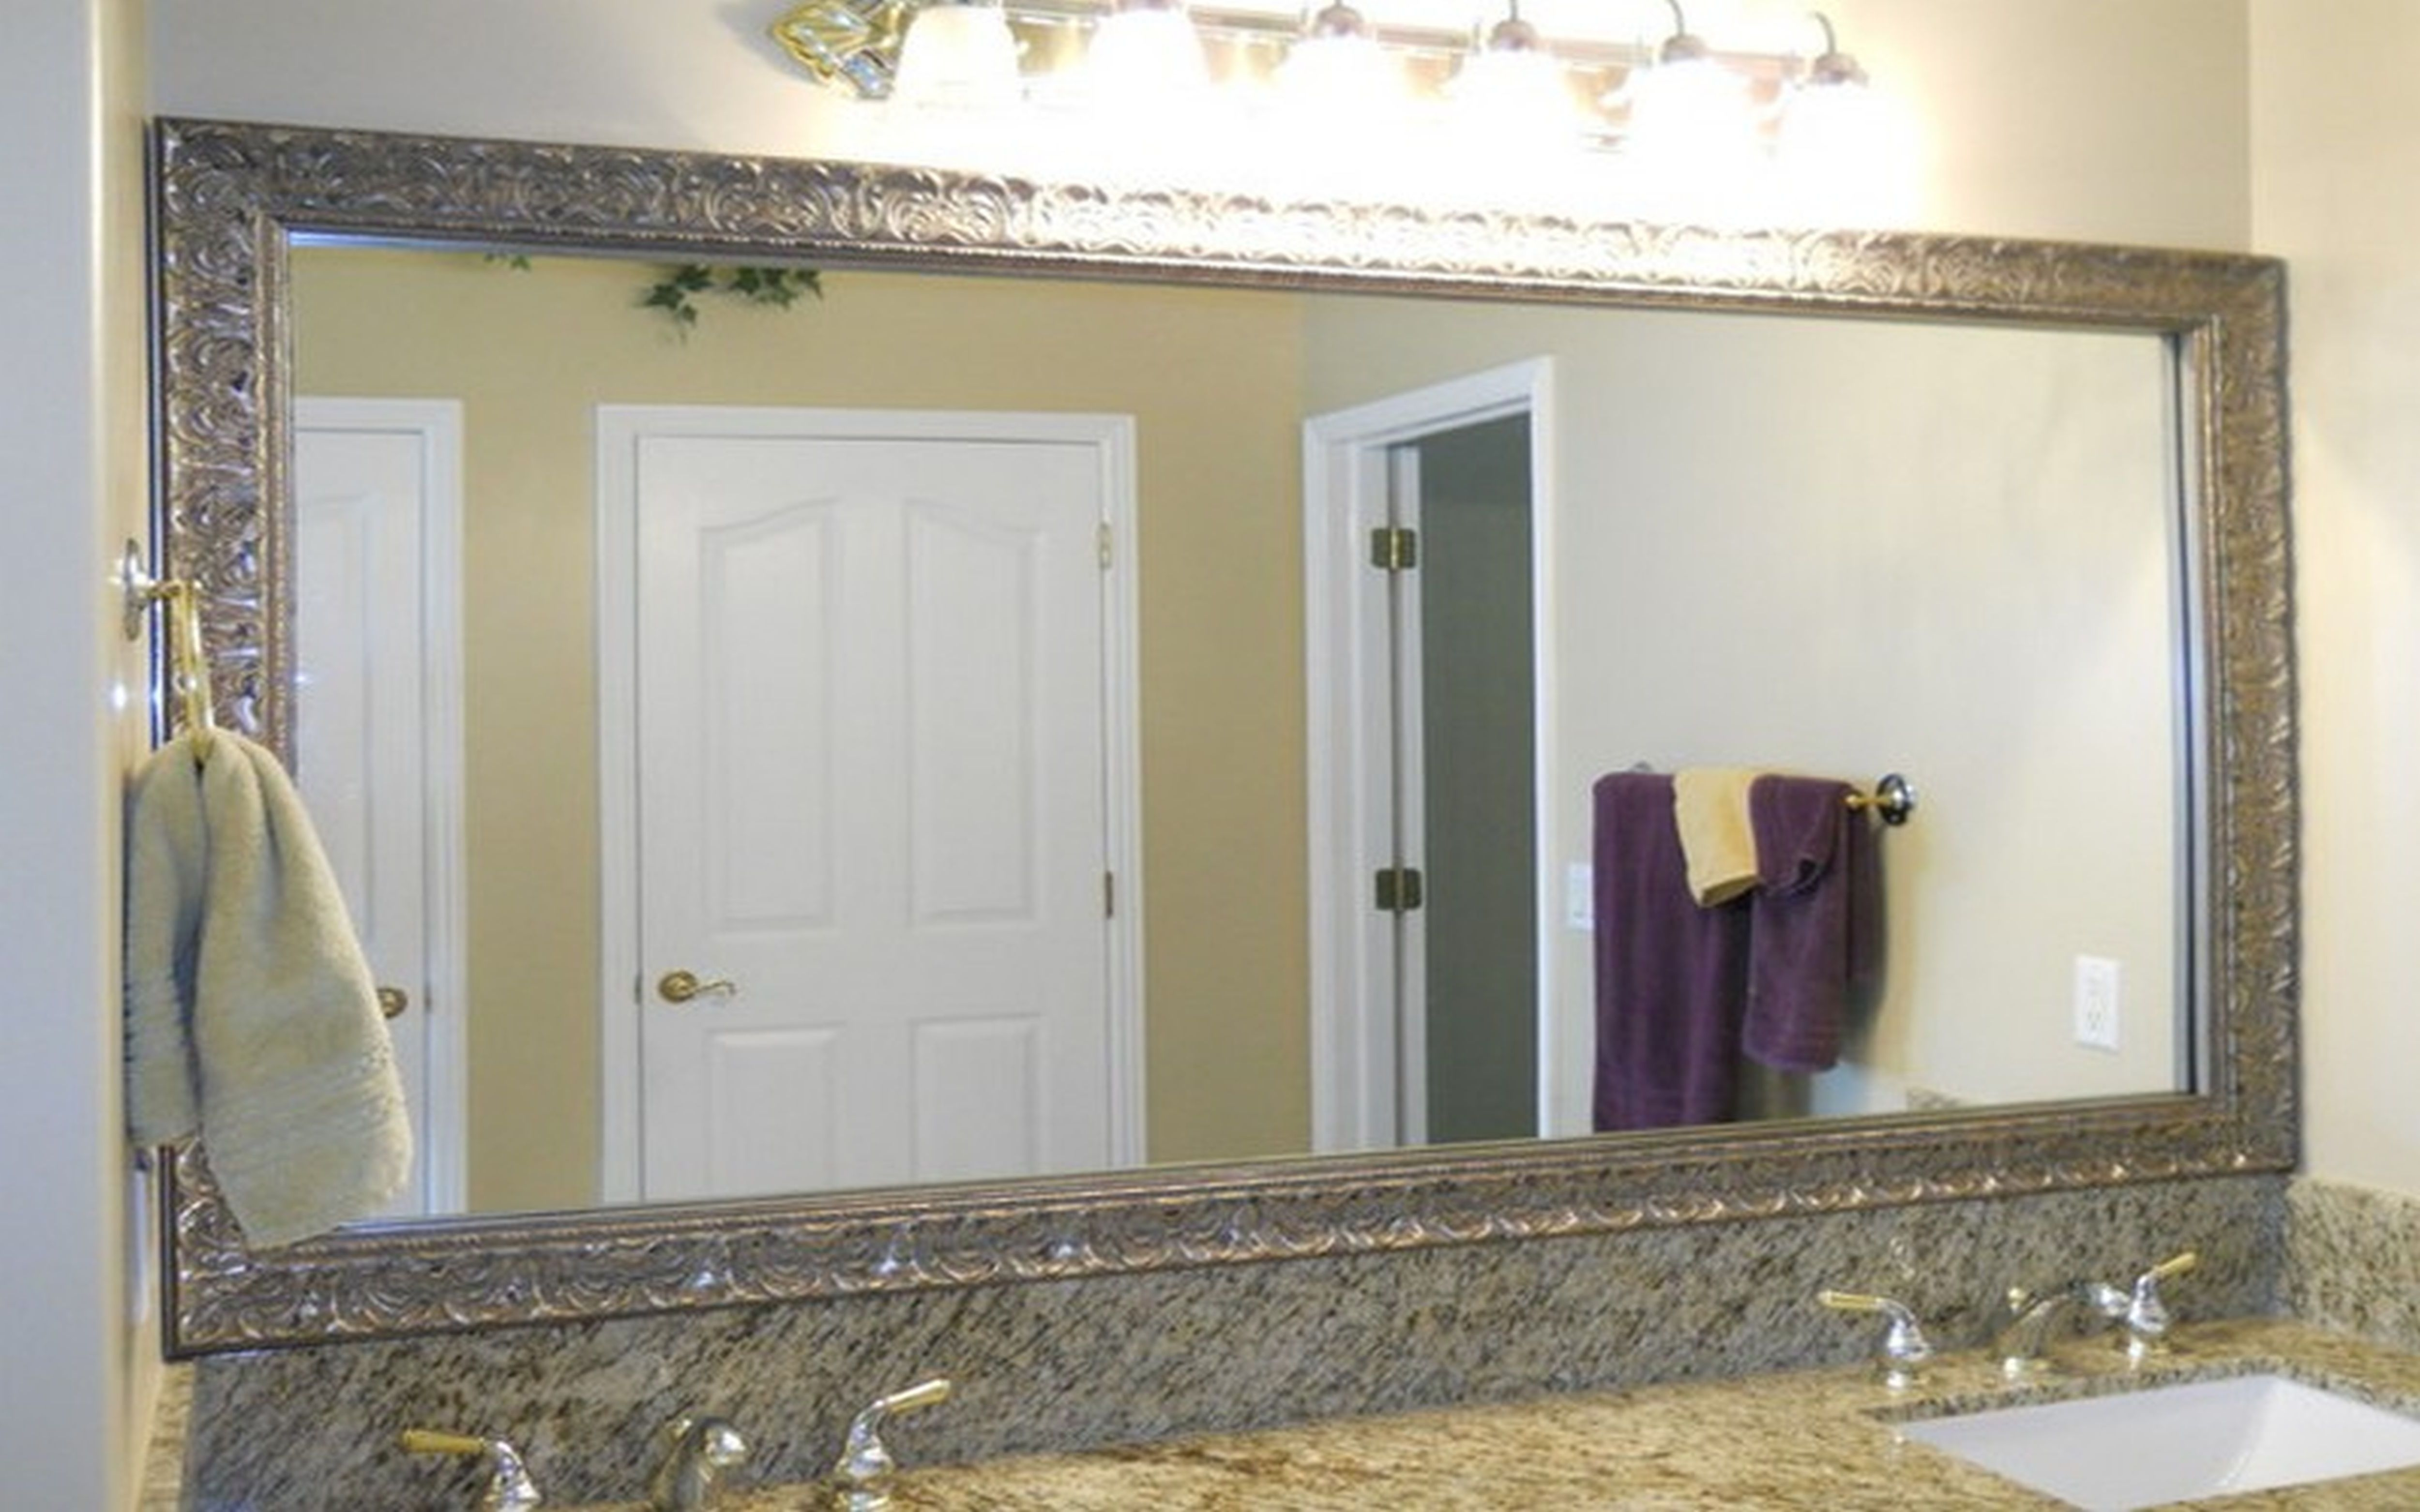 Bathroom Furniture Bathroom Tilting Bathroom Mirror And Tile And Within Cream Wall Mirror (Image 4 of 15)